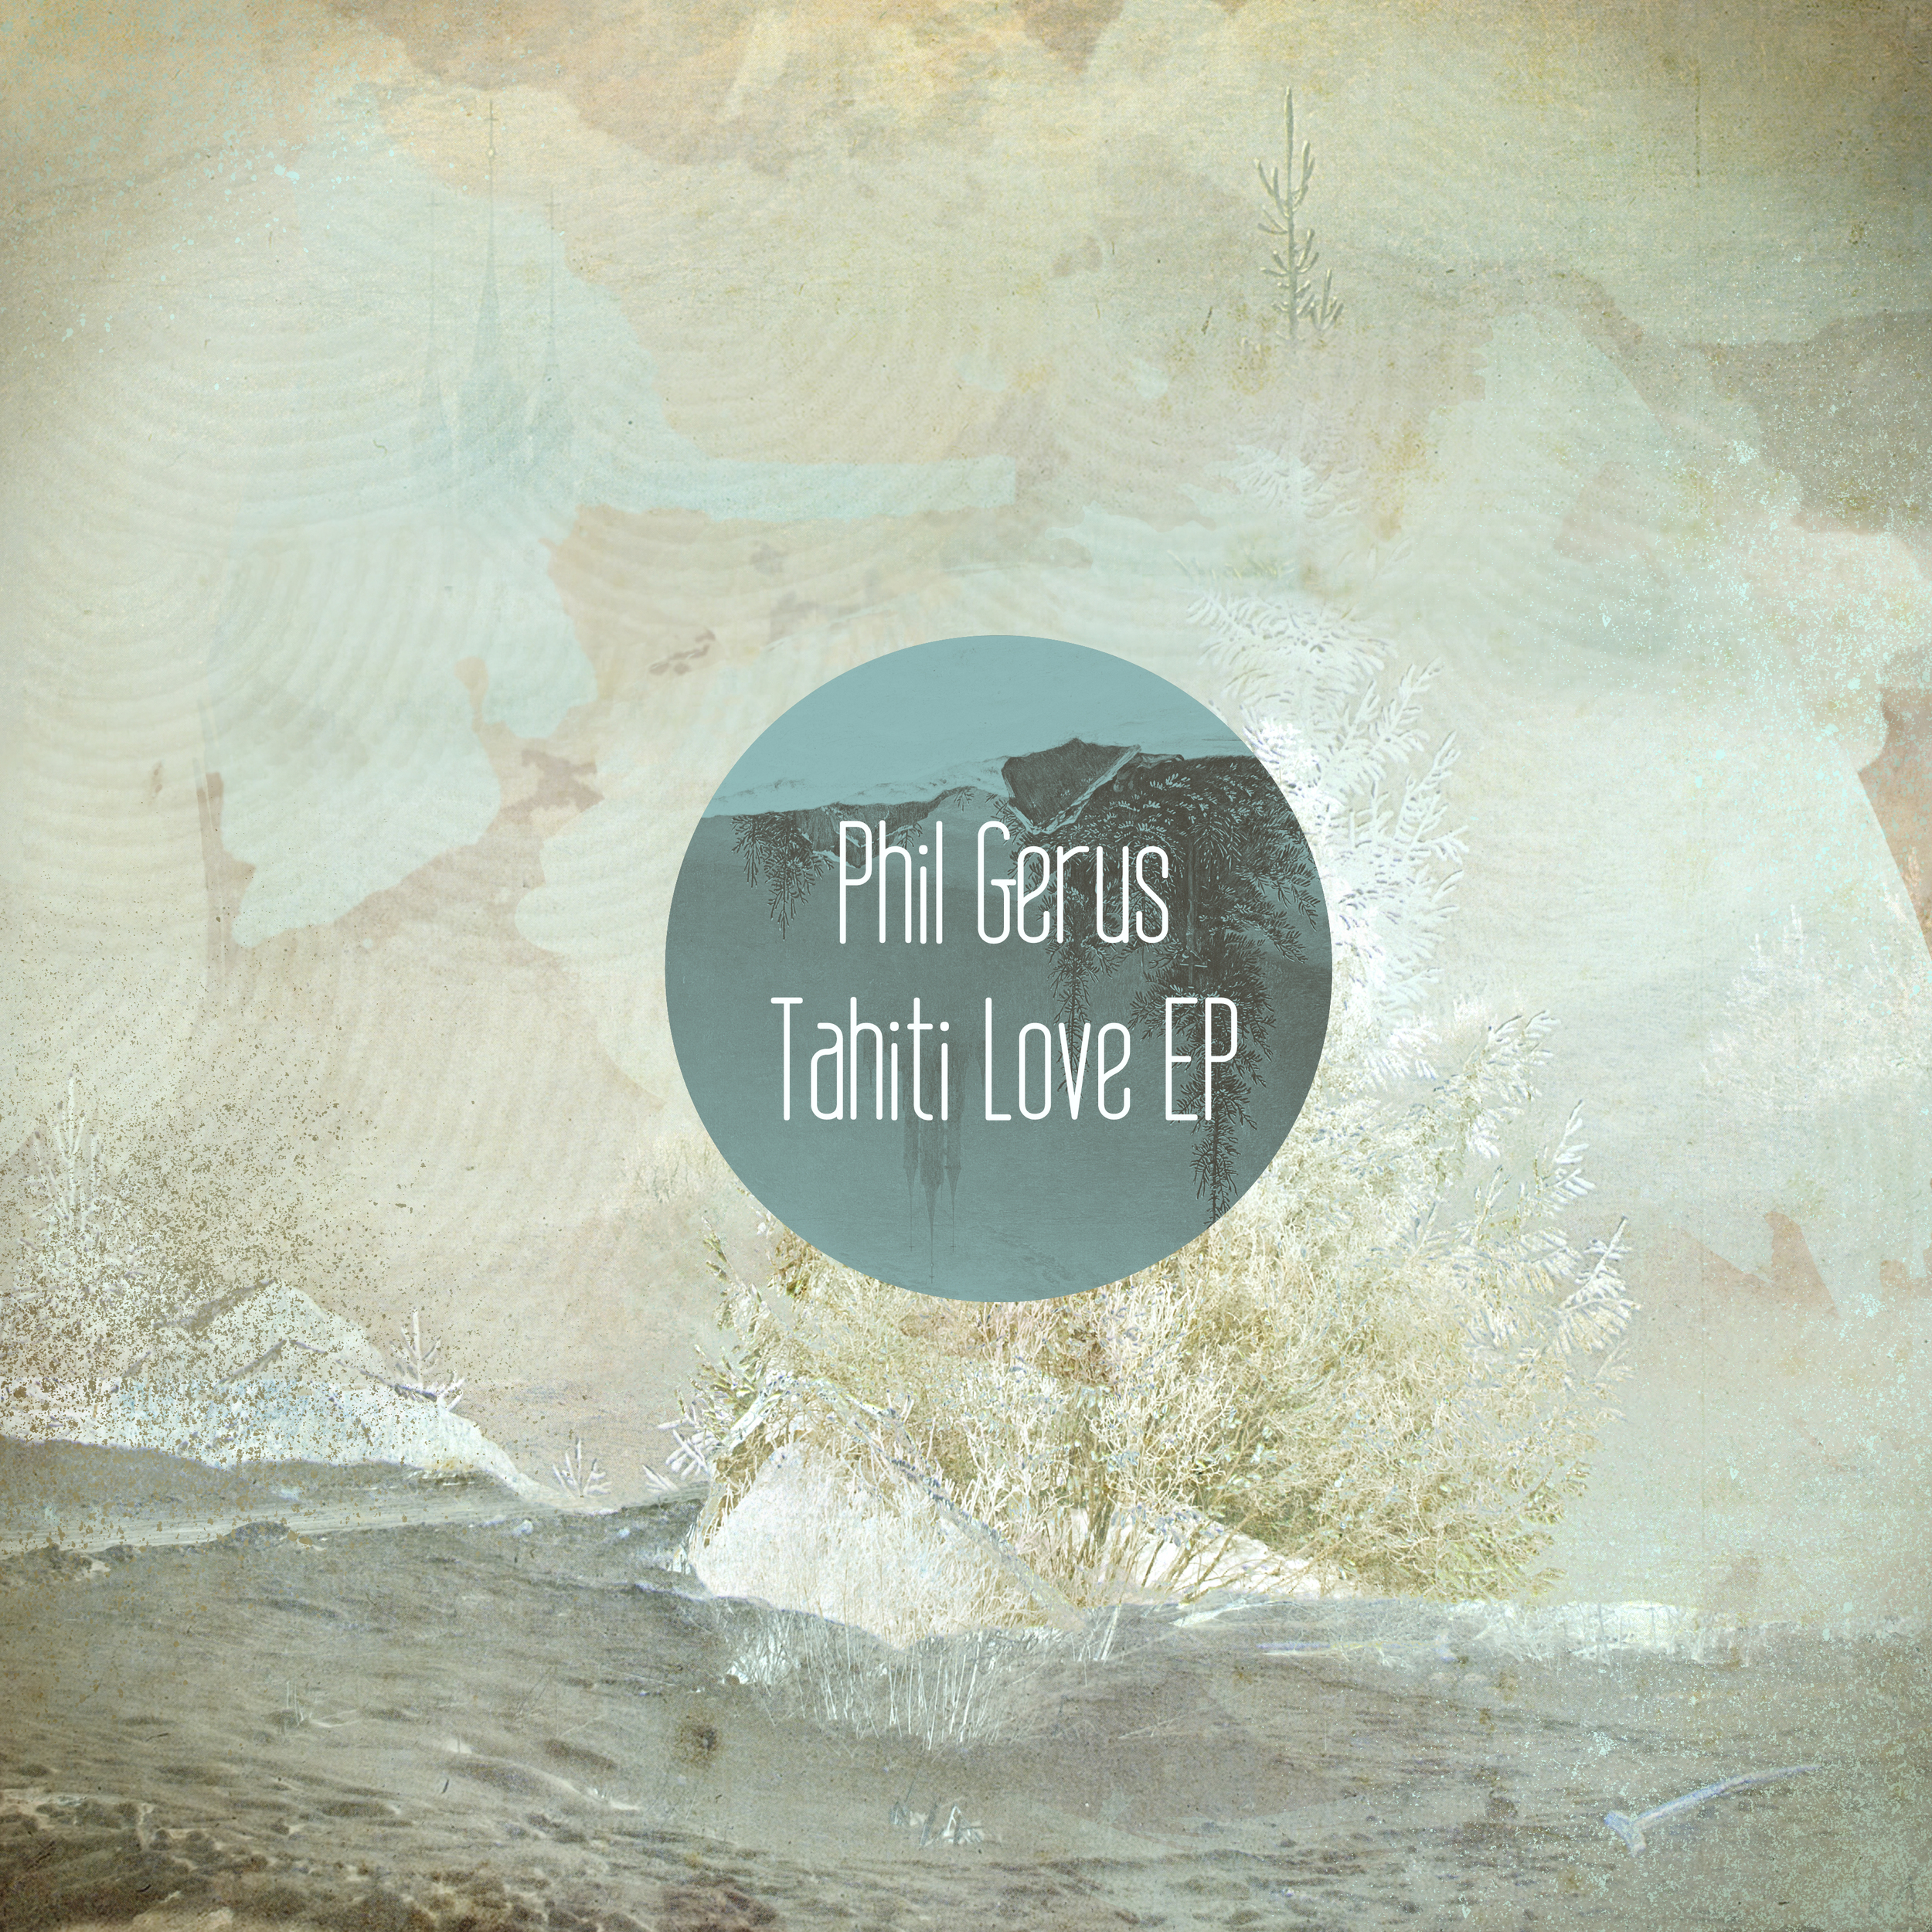 Tahiti Love EP - Phil Gerus